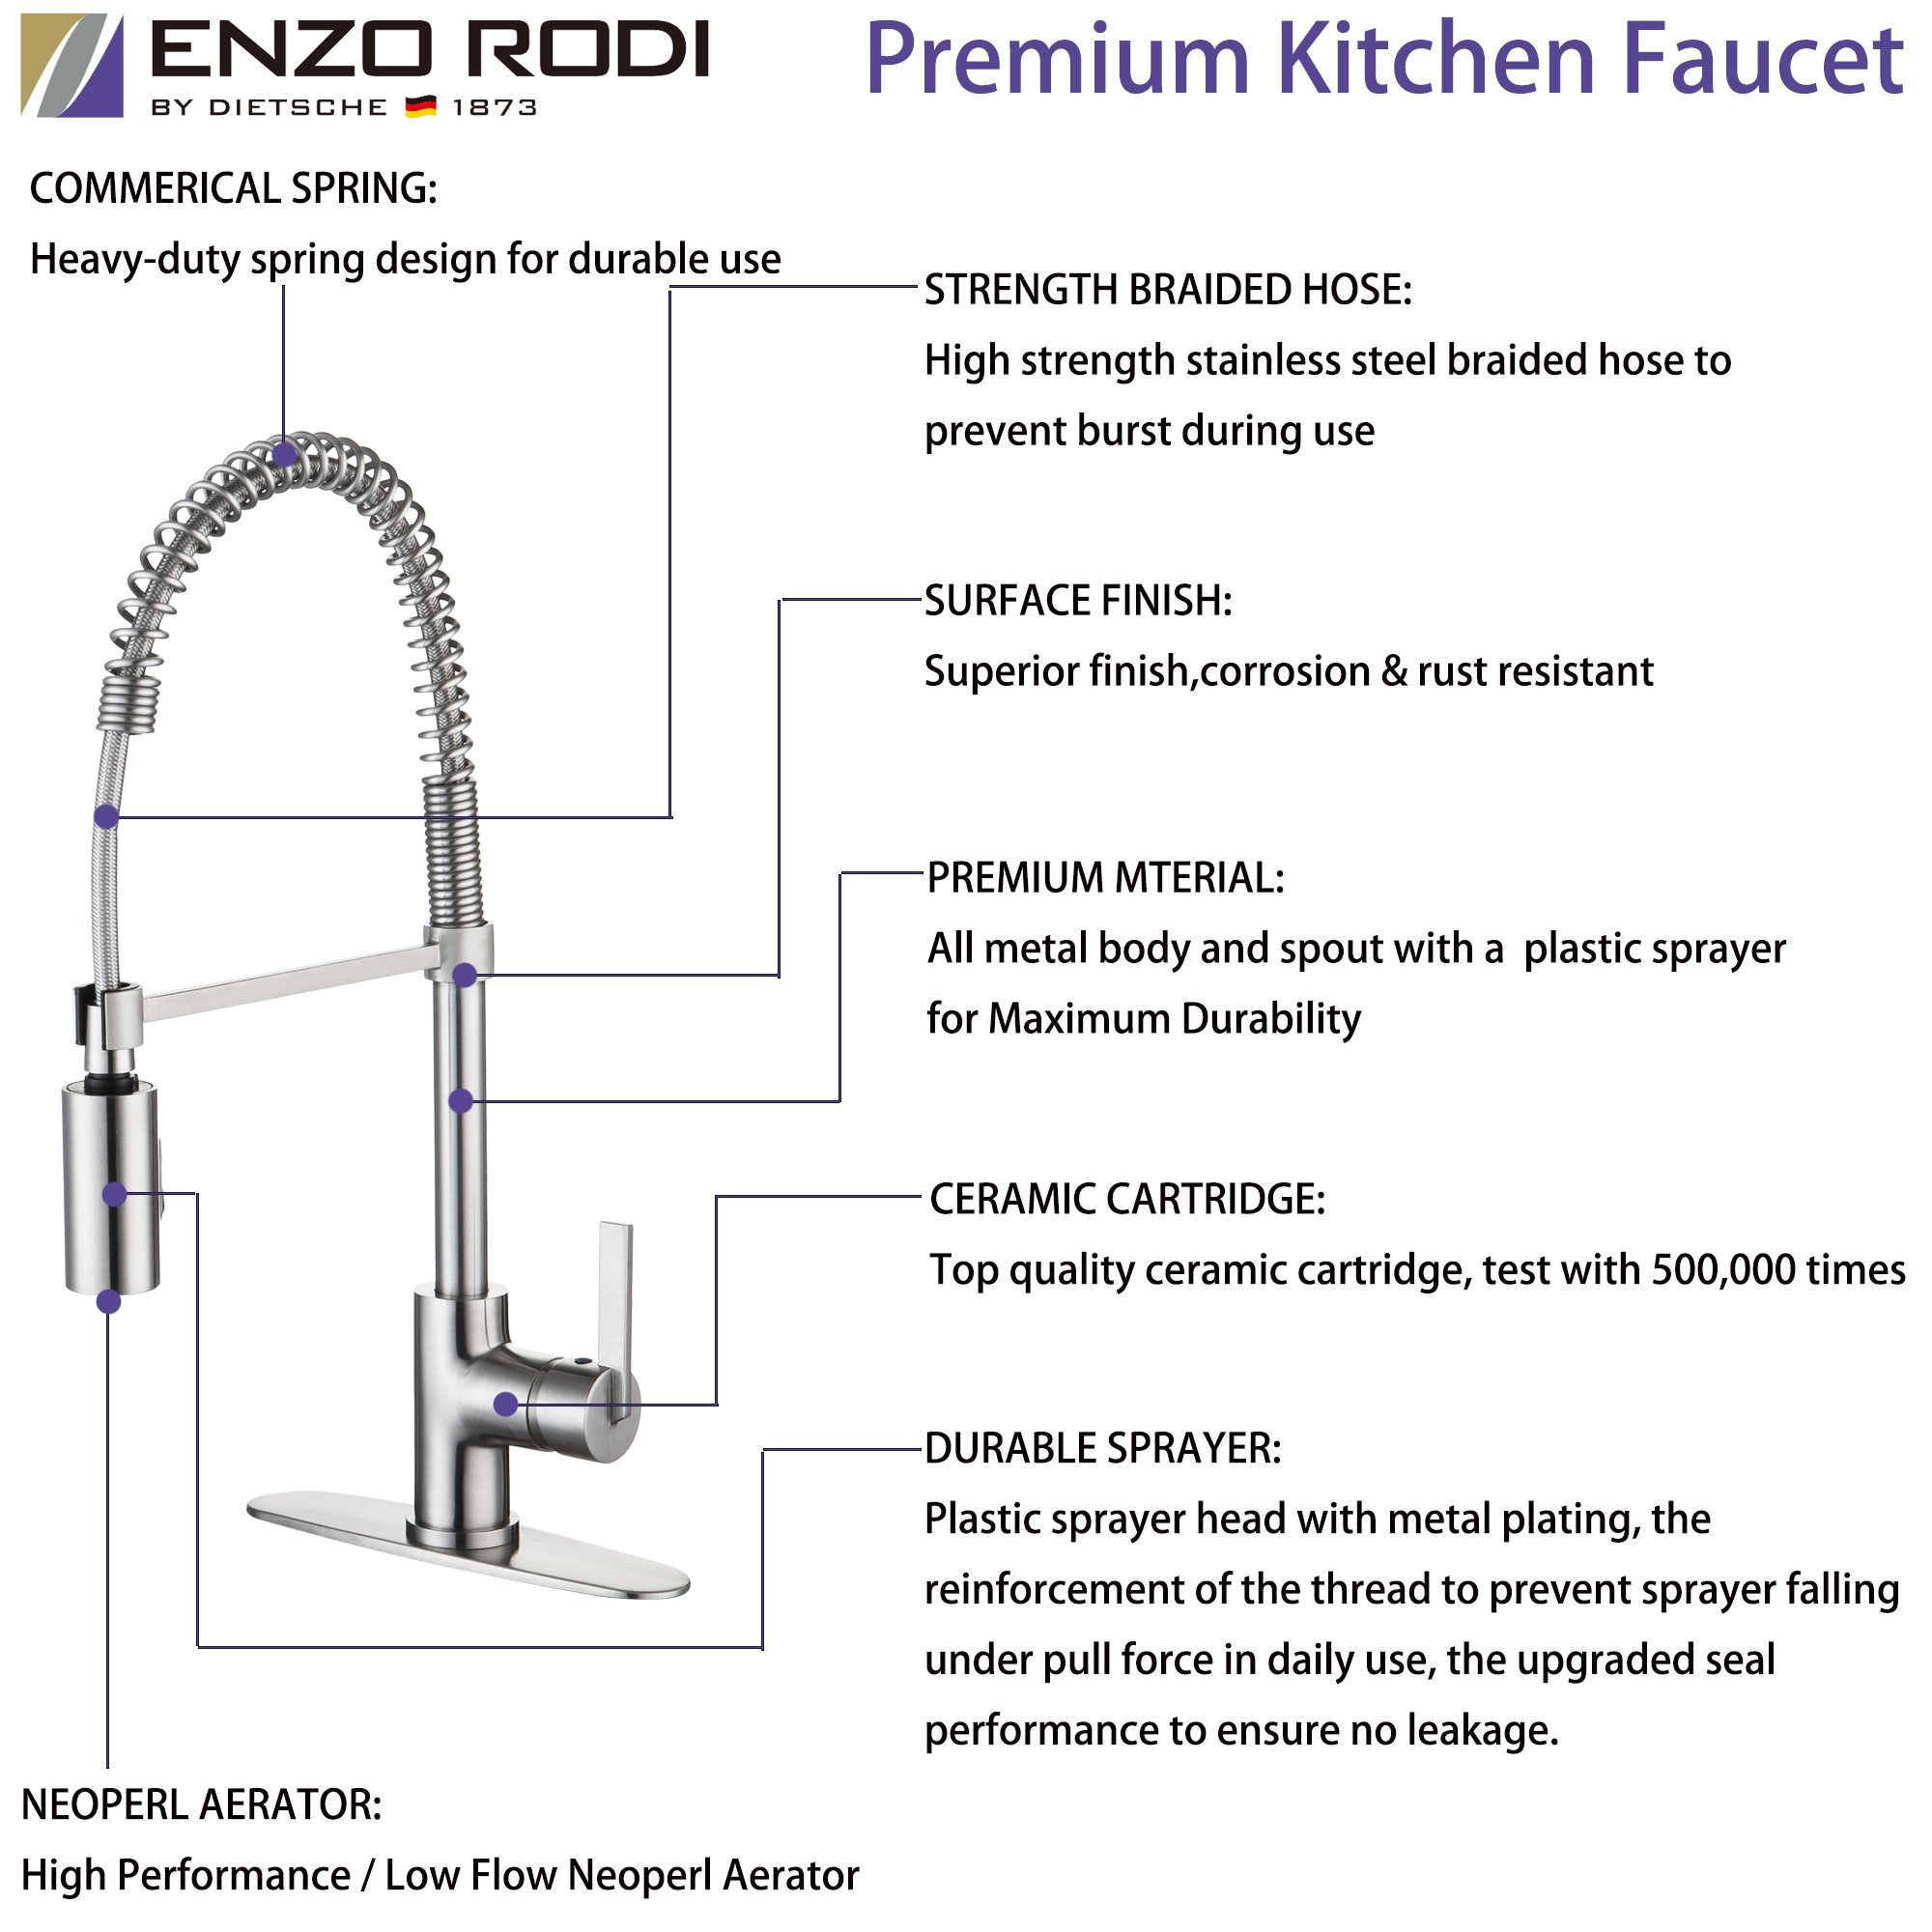 faucets steel faucet kitchen mount and size know used sprayer with two spray in image compartment stainless commercial wallpaper three industrial sink dual full of